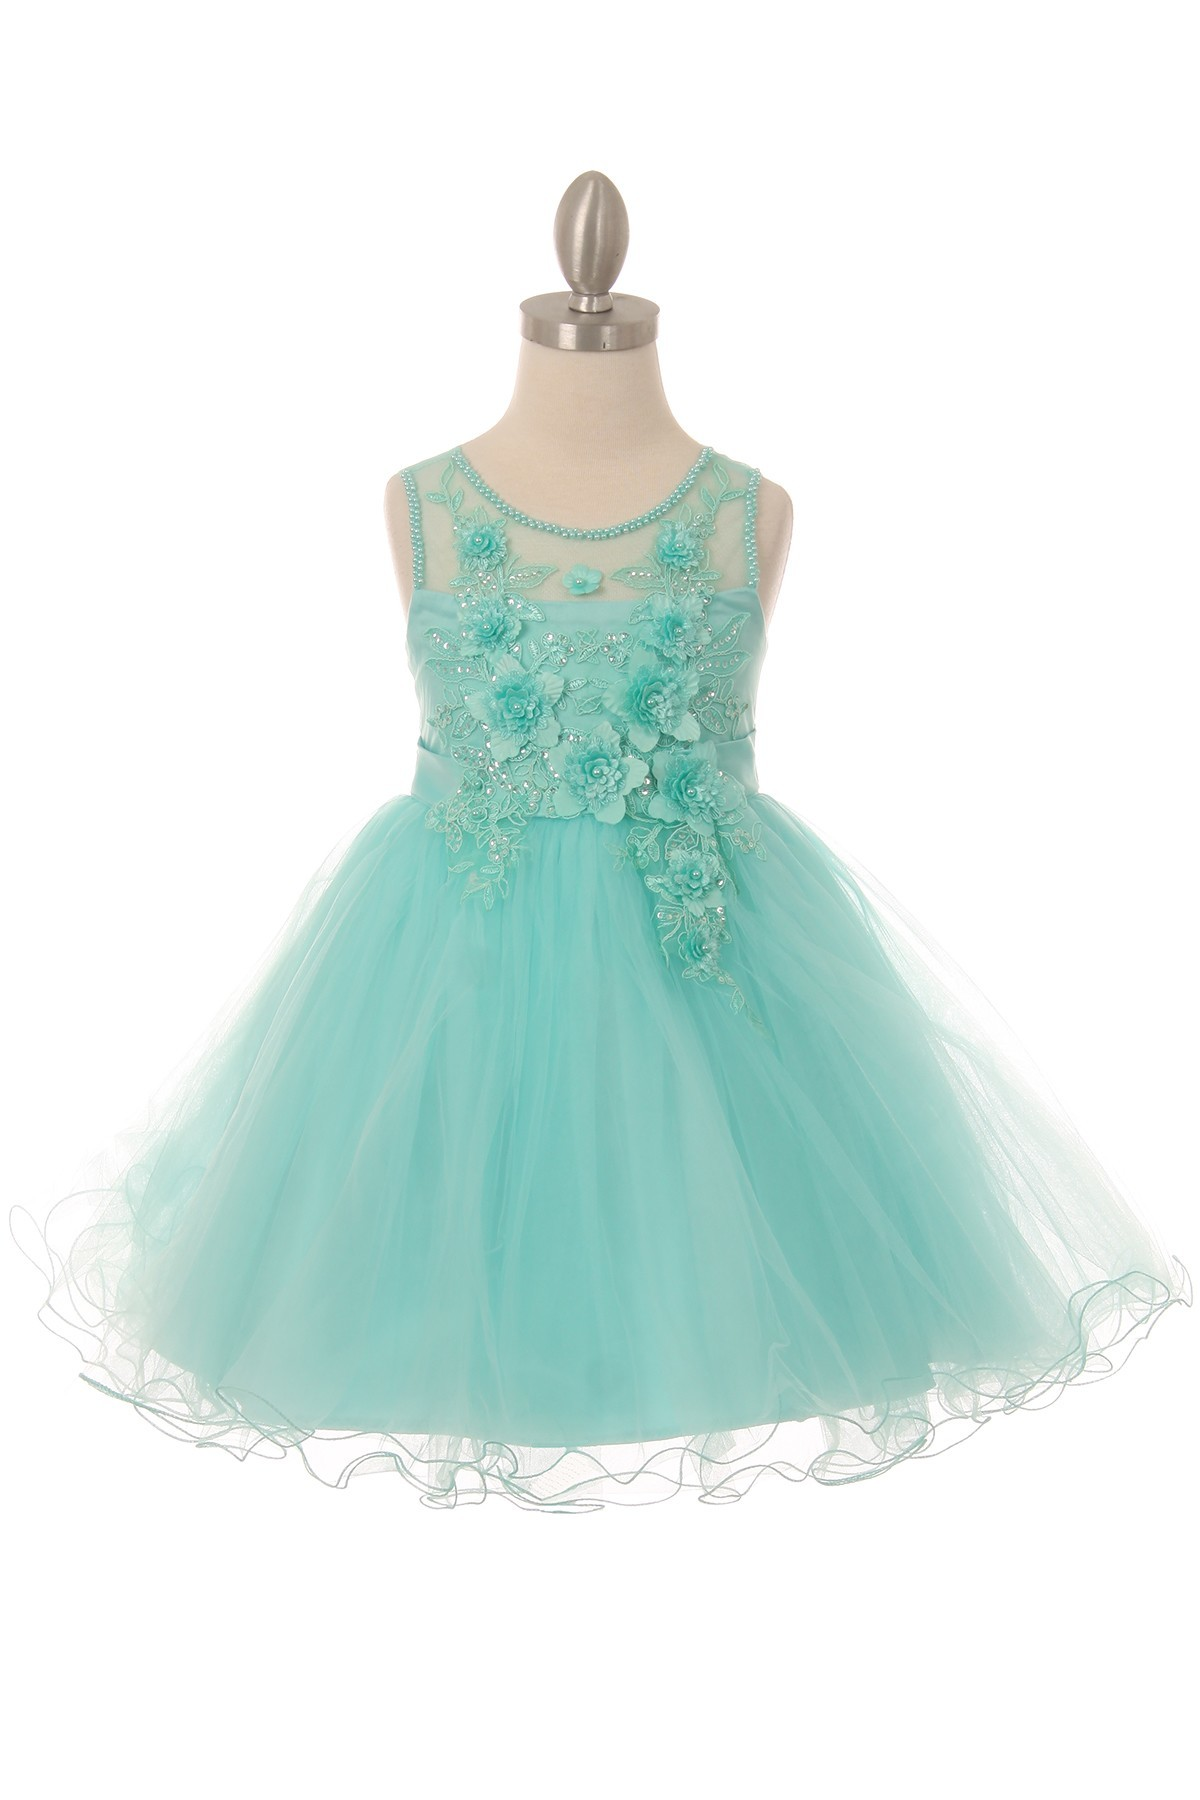 Girls short floral tulle lace dress with illusion neckline, and bow back.